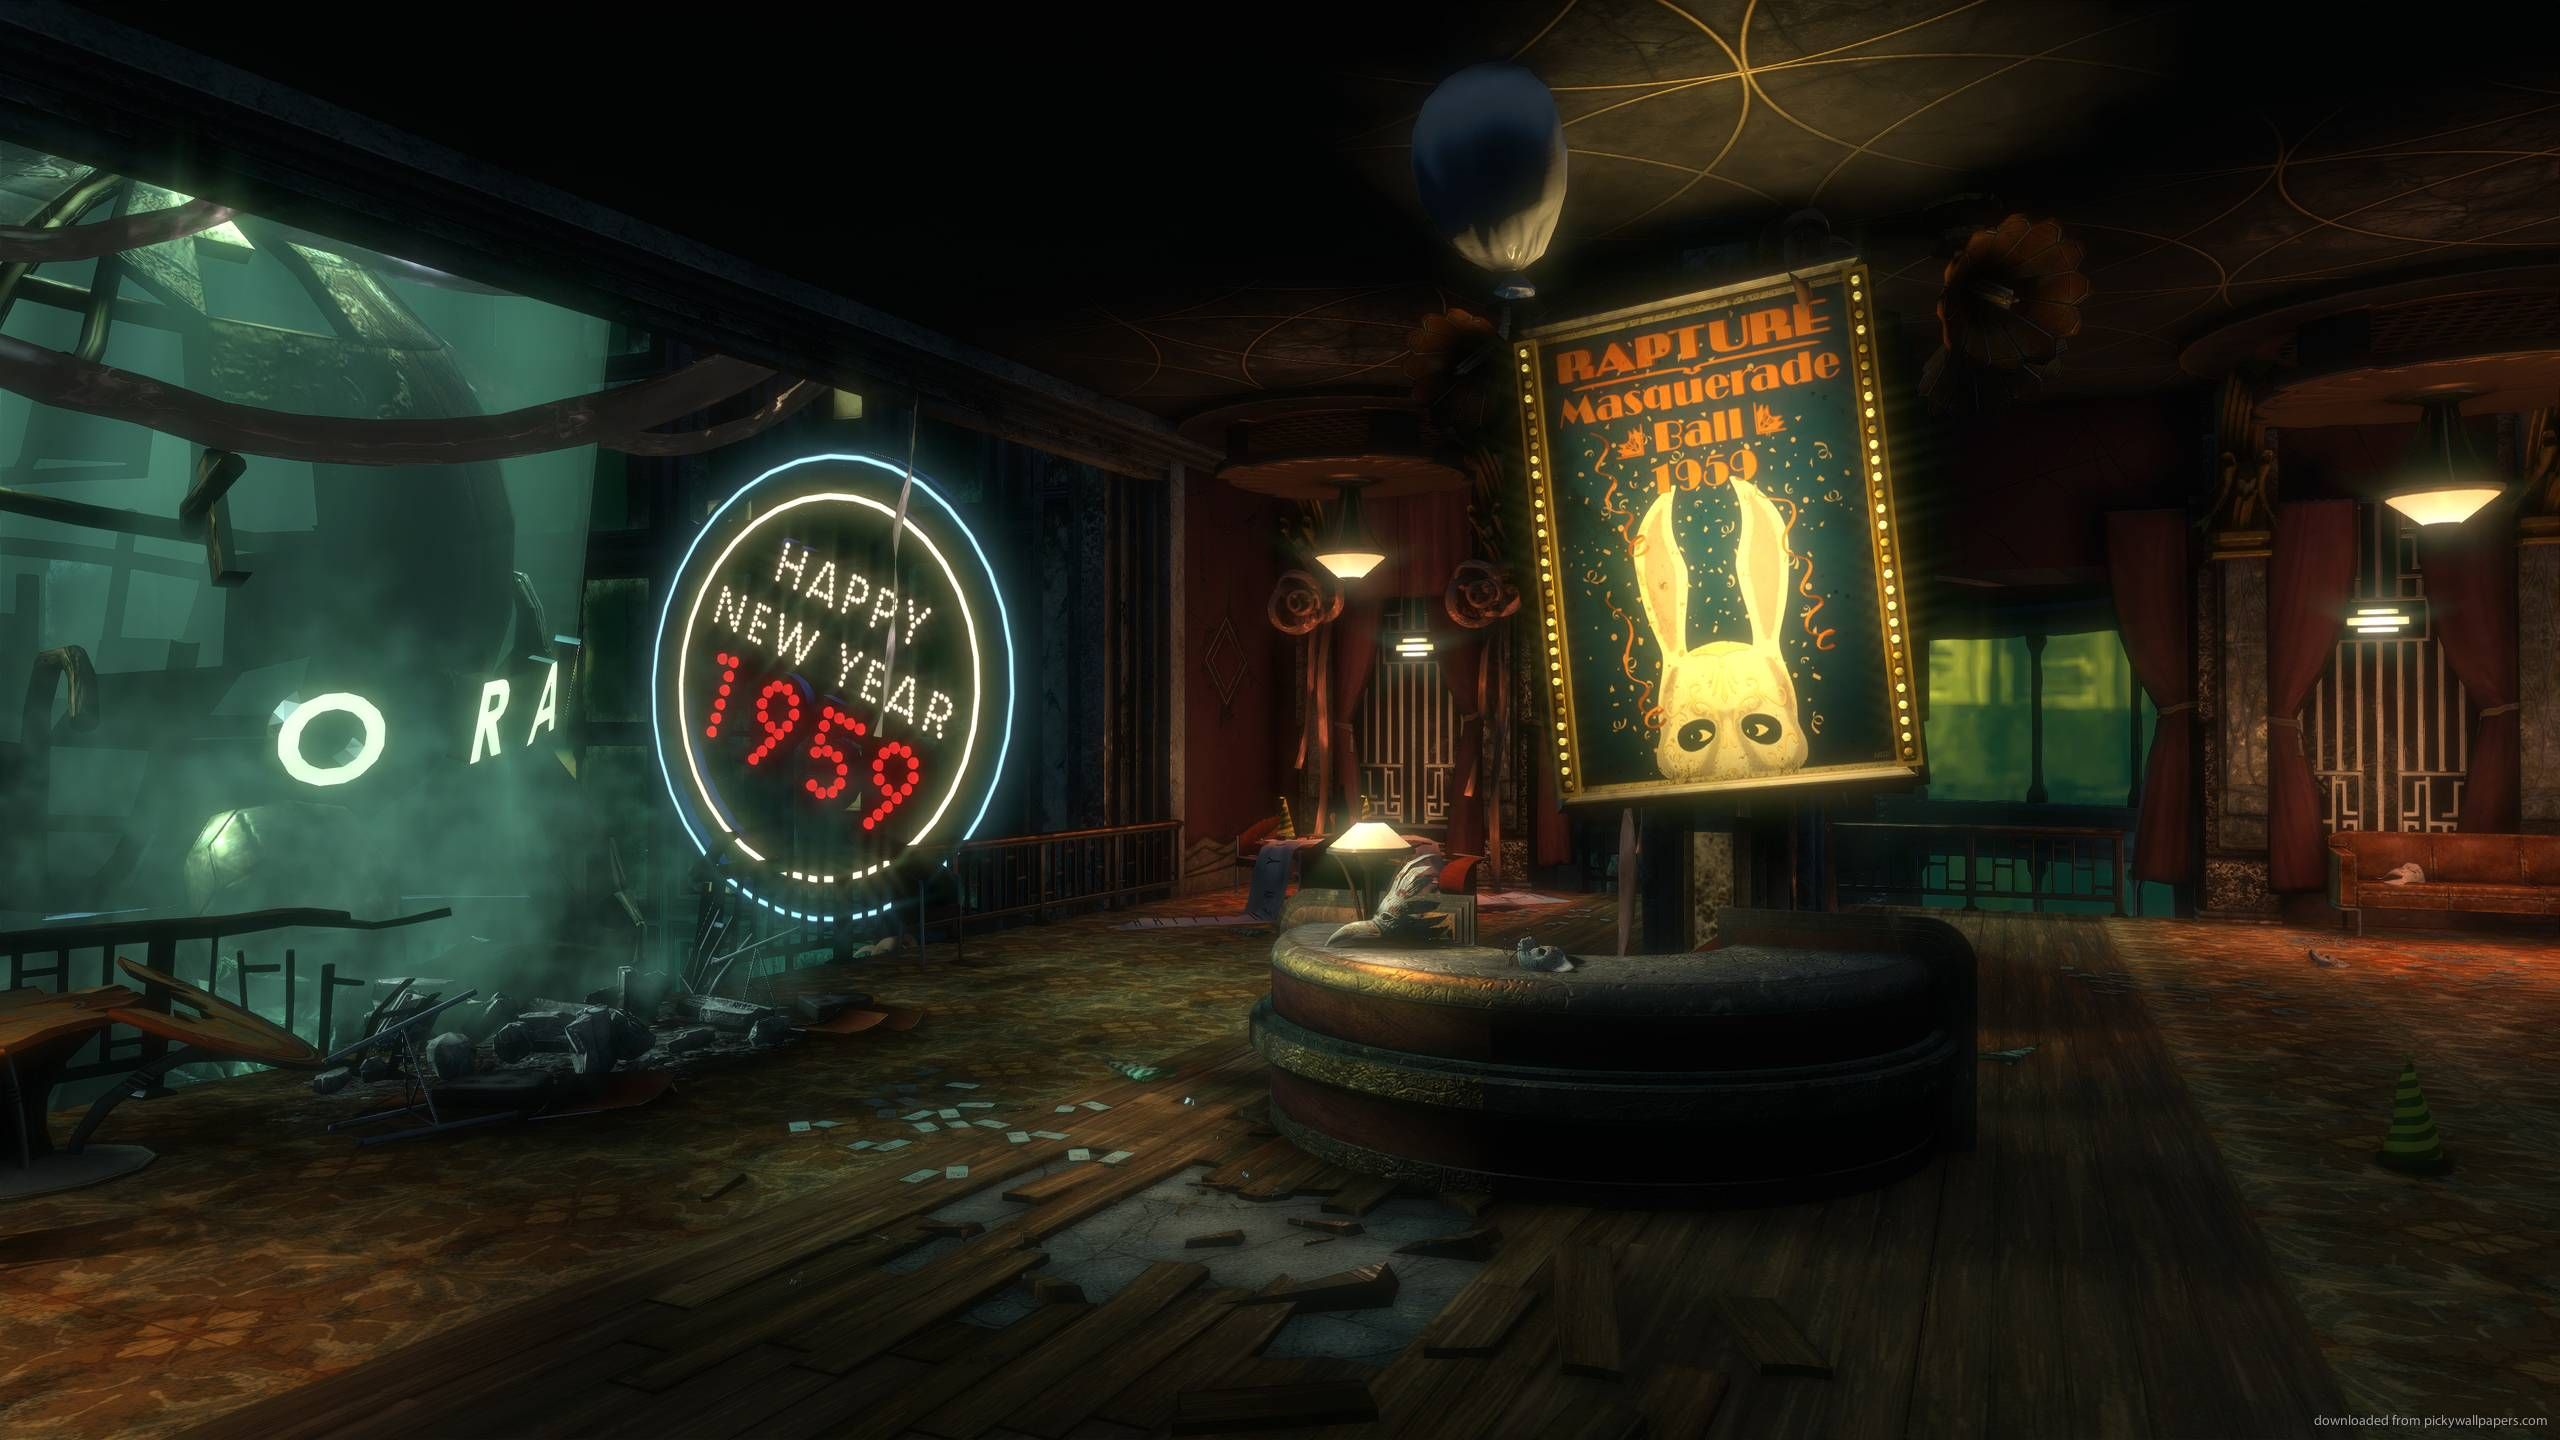 bioshock rapture wallpapers with hd desktop 2560x1440 px 27368 kb